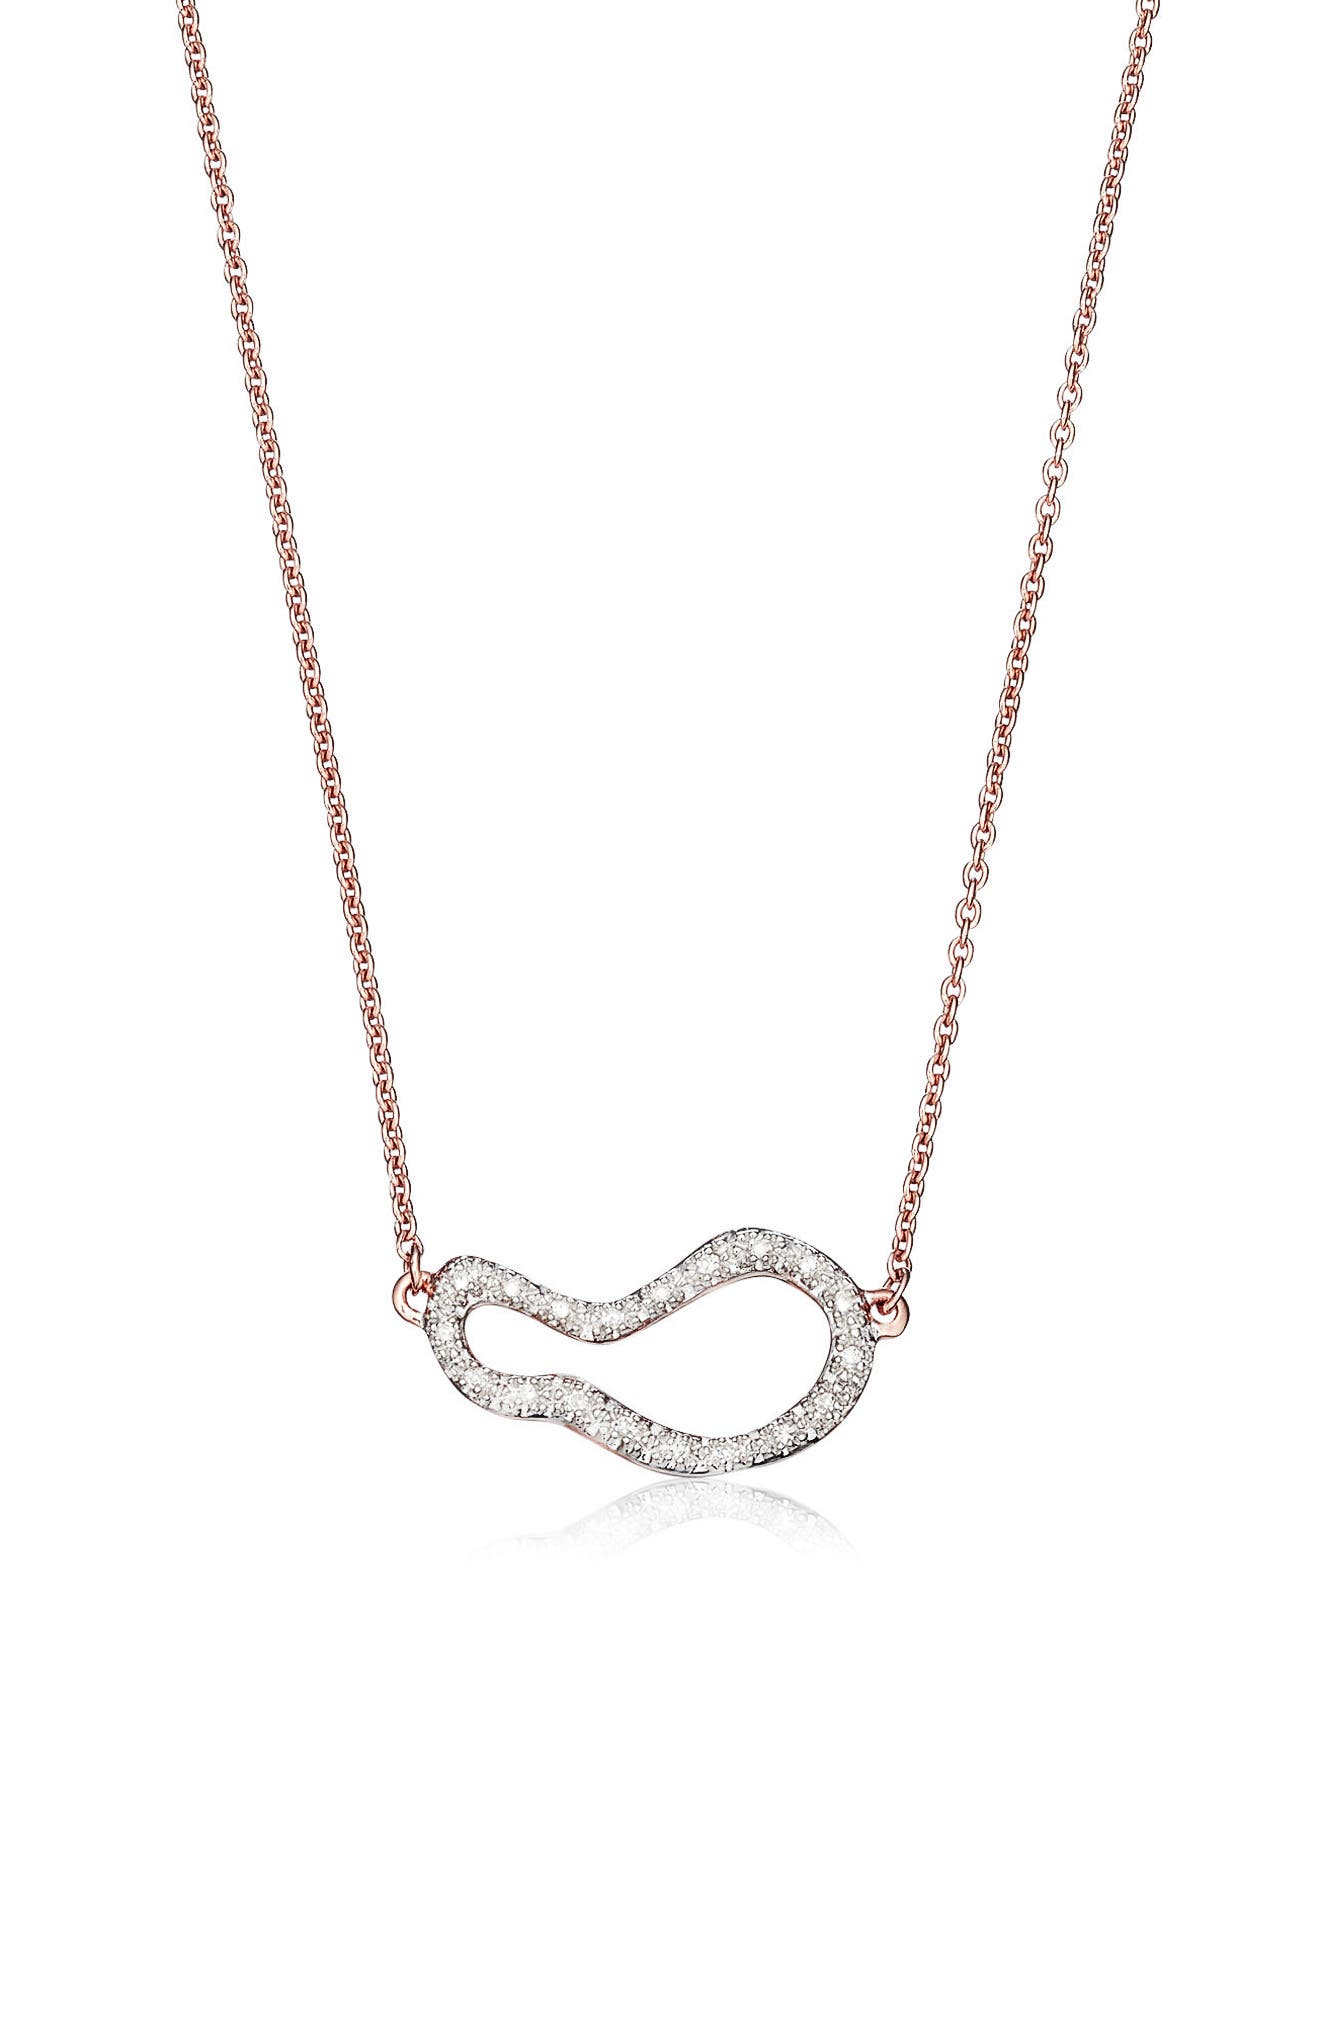 Riva Small Diamond Pendant Necklace,                         Main,                         color, Rose Gold